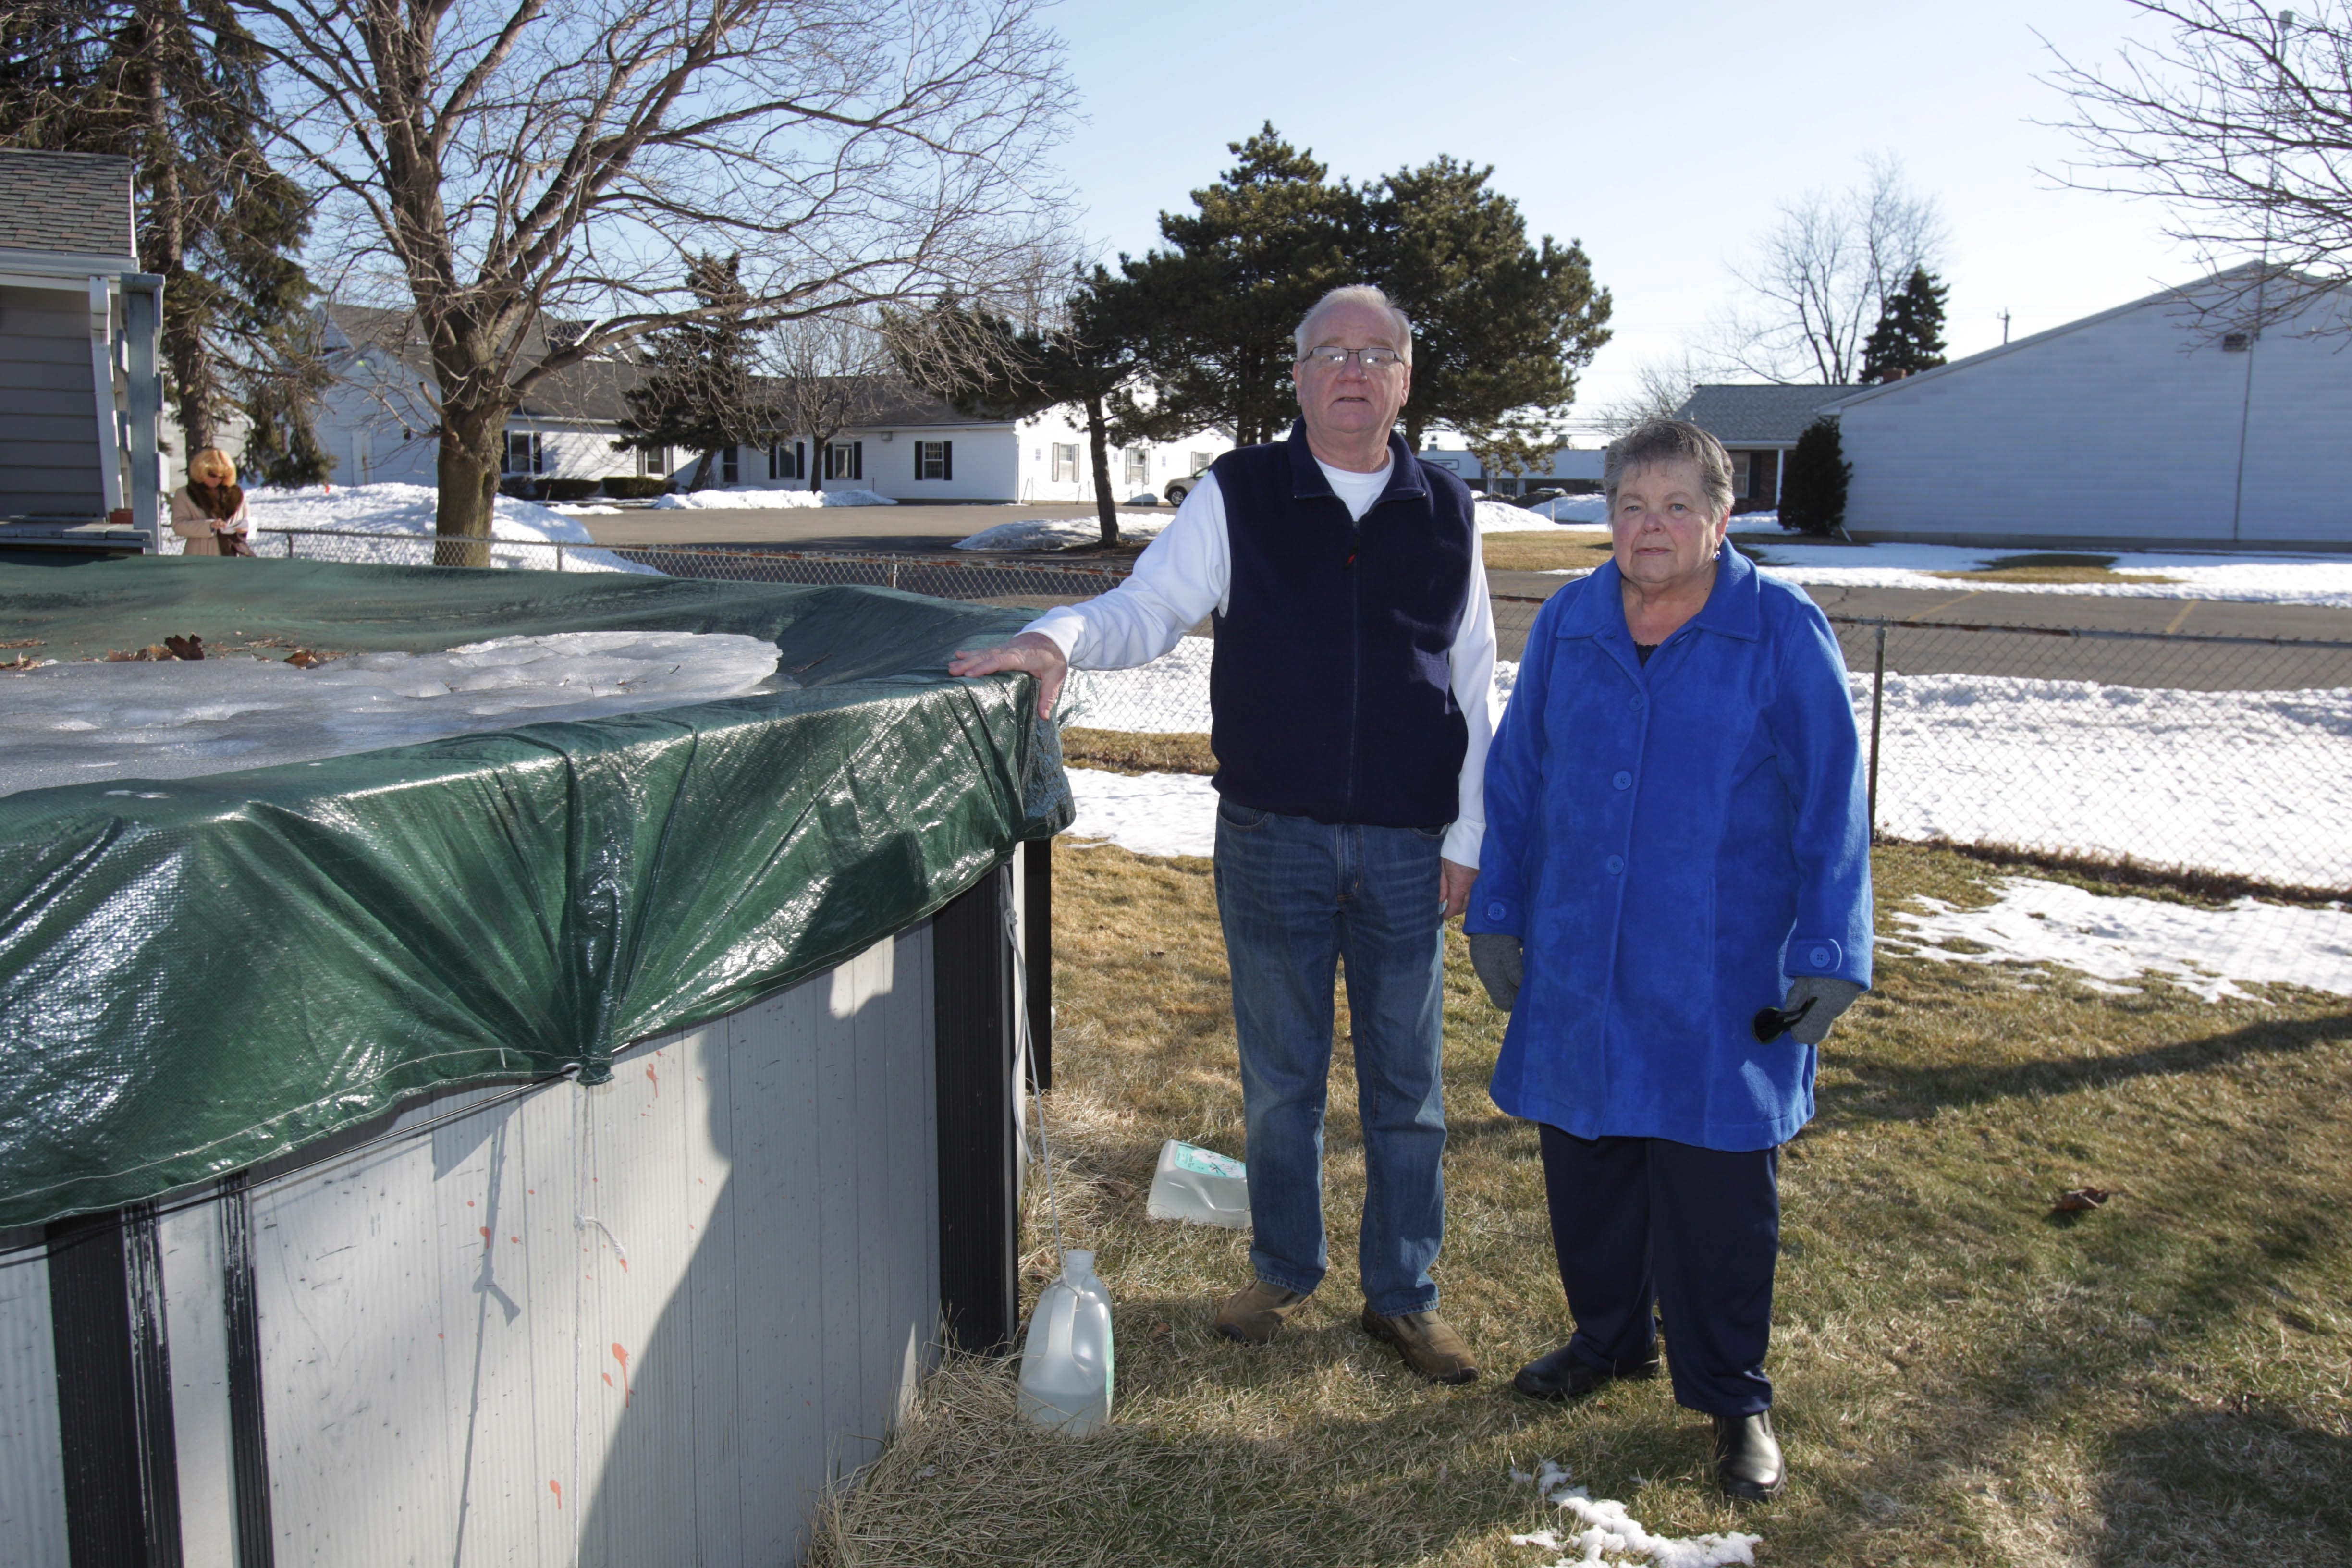 John Brueckl and neighbor Peggy Mengay are upset about the senior housing complex proposed for Cayuga Road.